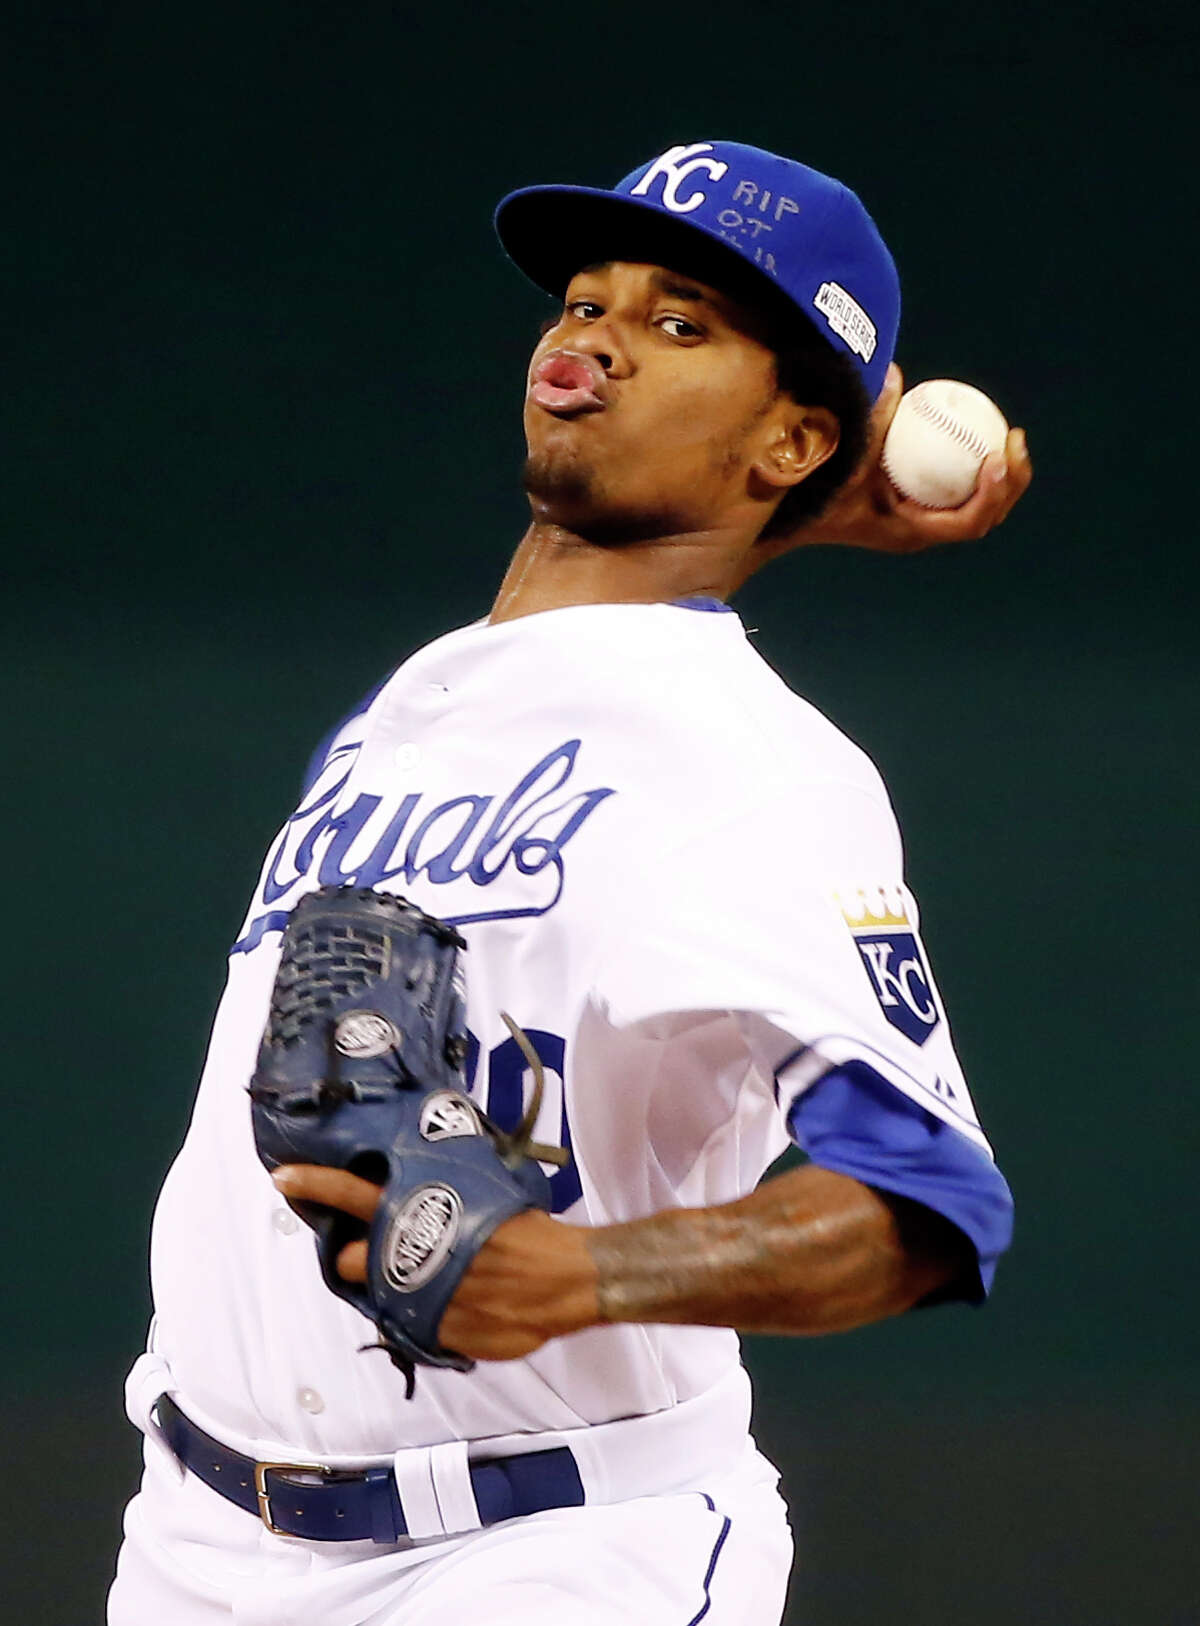 Kansas City Royals pitcher Yordano Ventura throws during the first inning of Game 6 of baseball's World Series against the San Francisco Giants Tuesday, Oct. 28, 2014, in Kansas City, Mo. (AP Photo/Tannen Maury, Pool) ORG XMIT: WS319